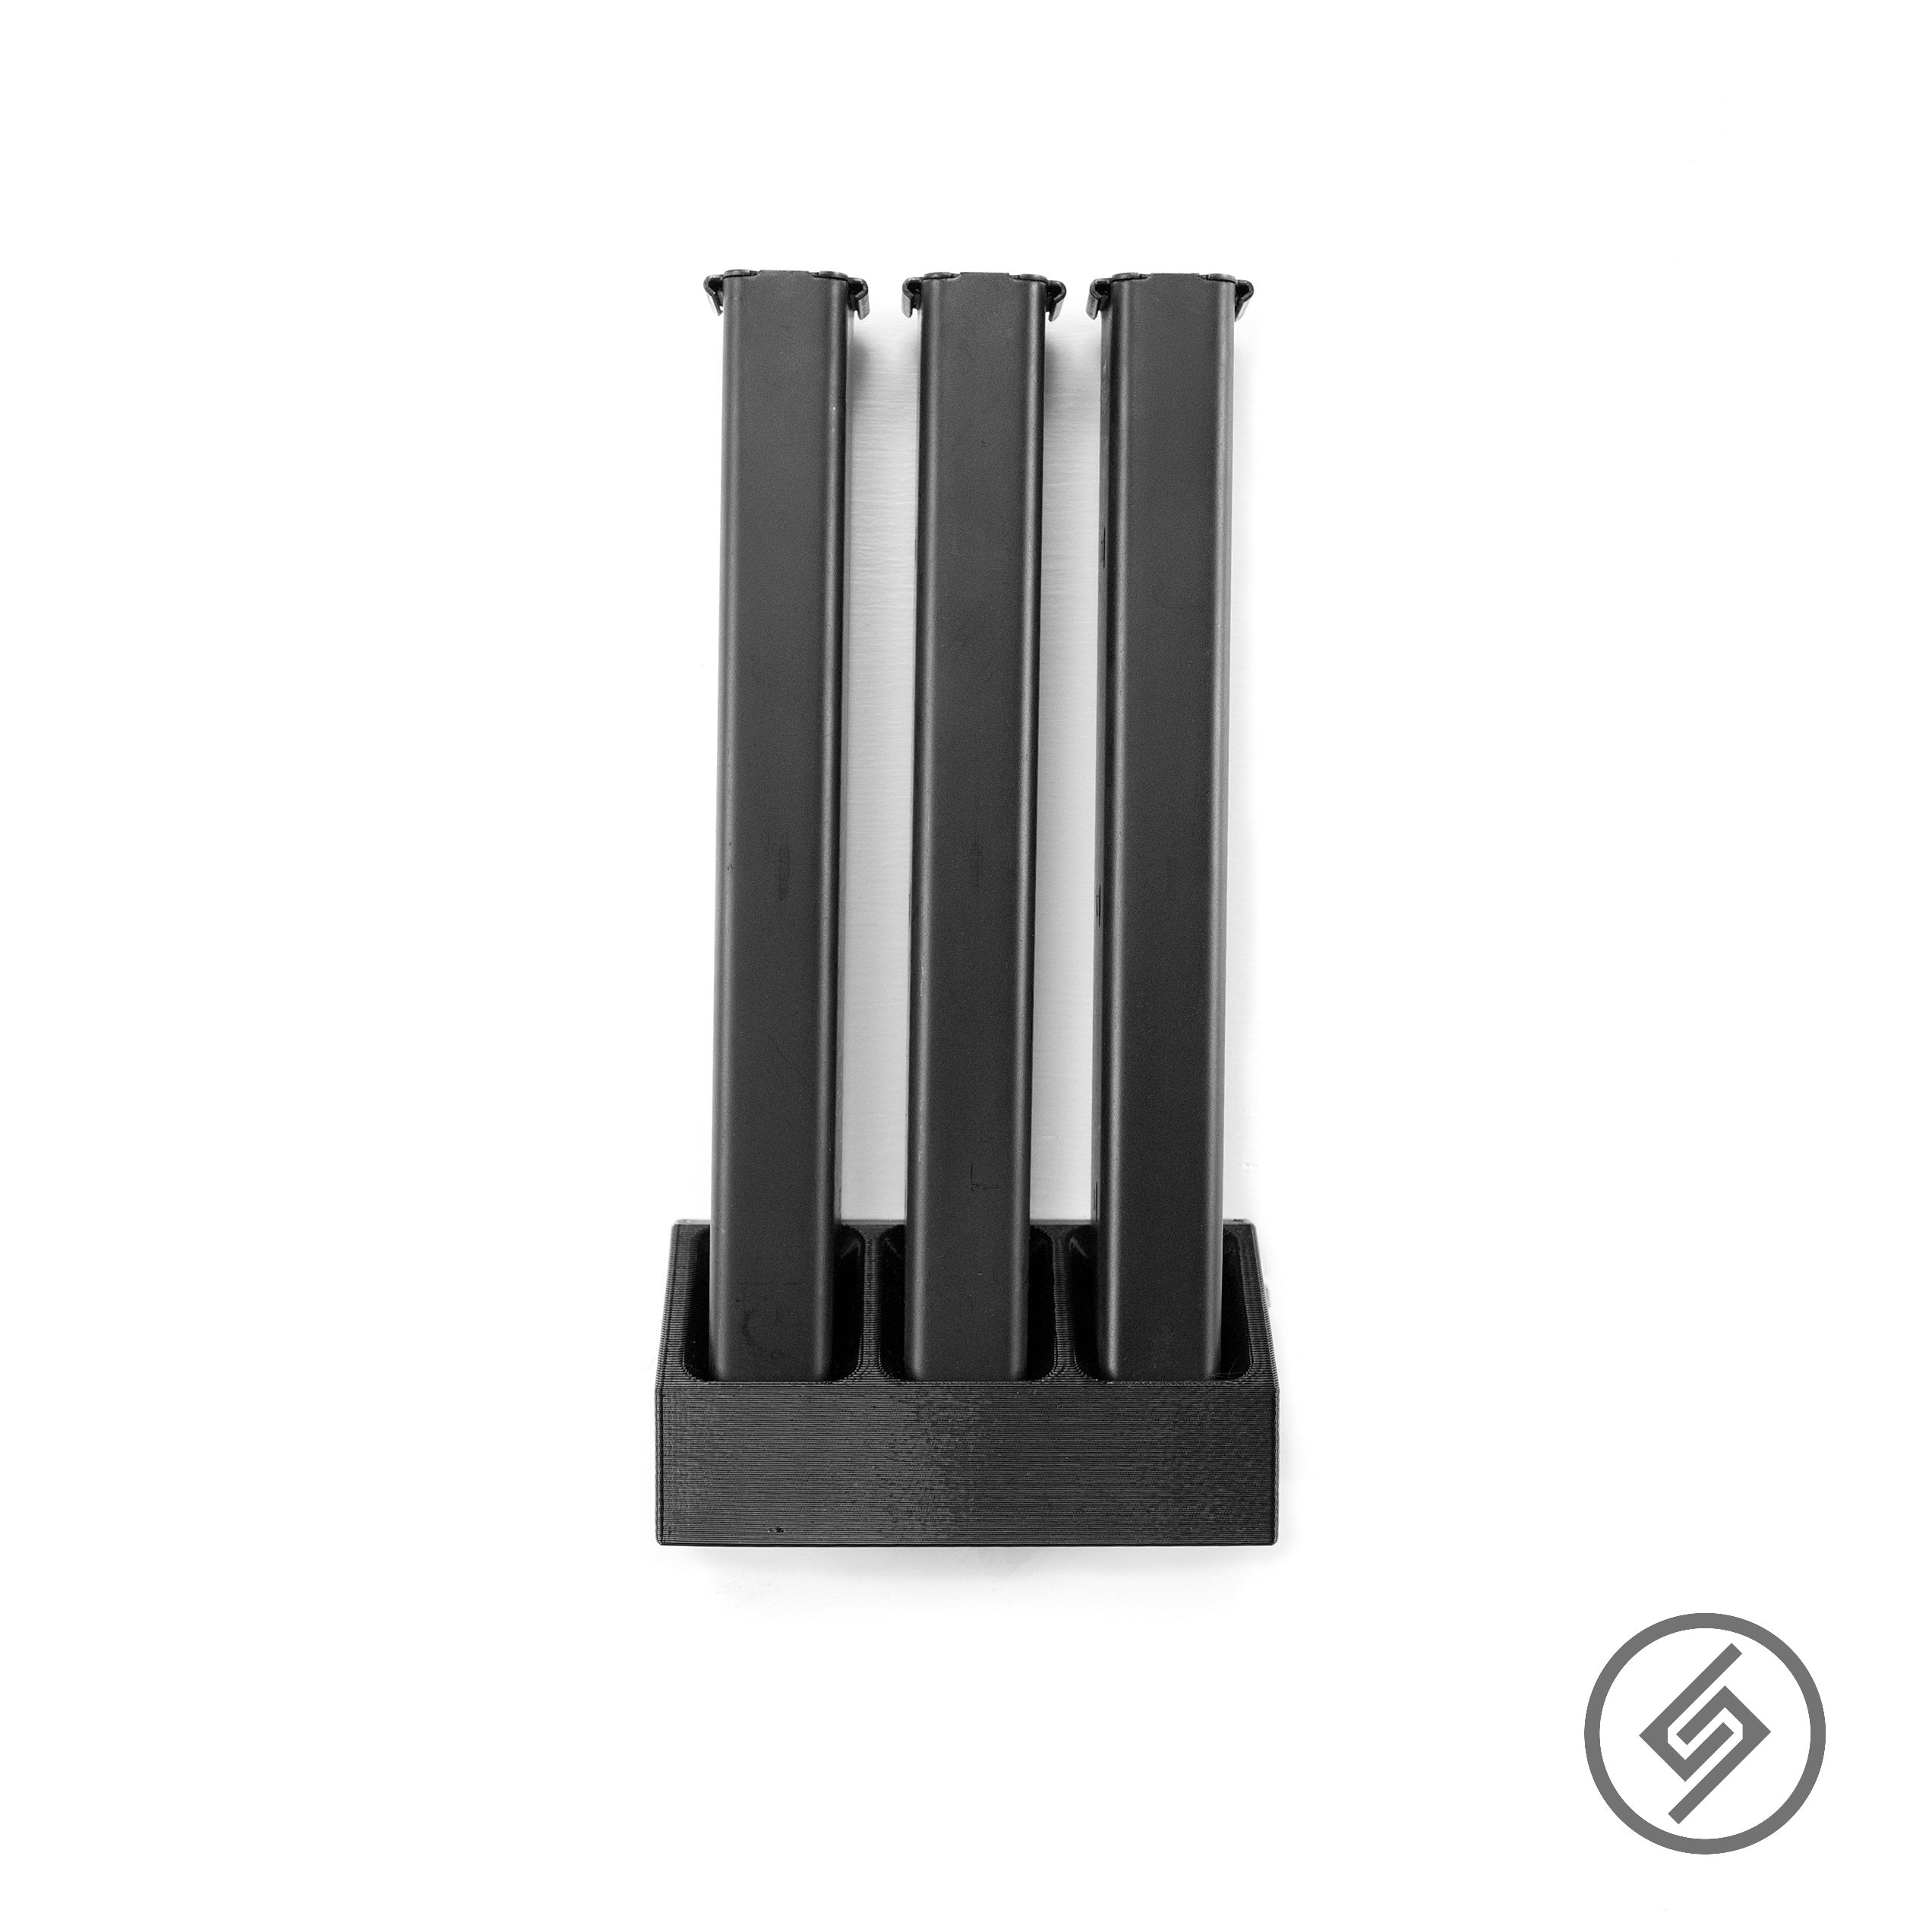 Spartan Magazine Mount for COLT 9mm MAGS, Spartan Mounts, Display